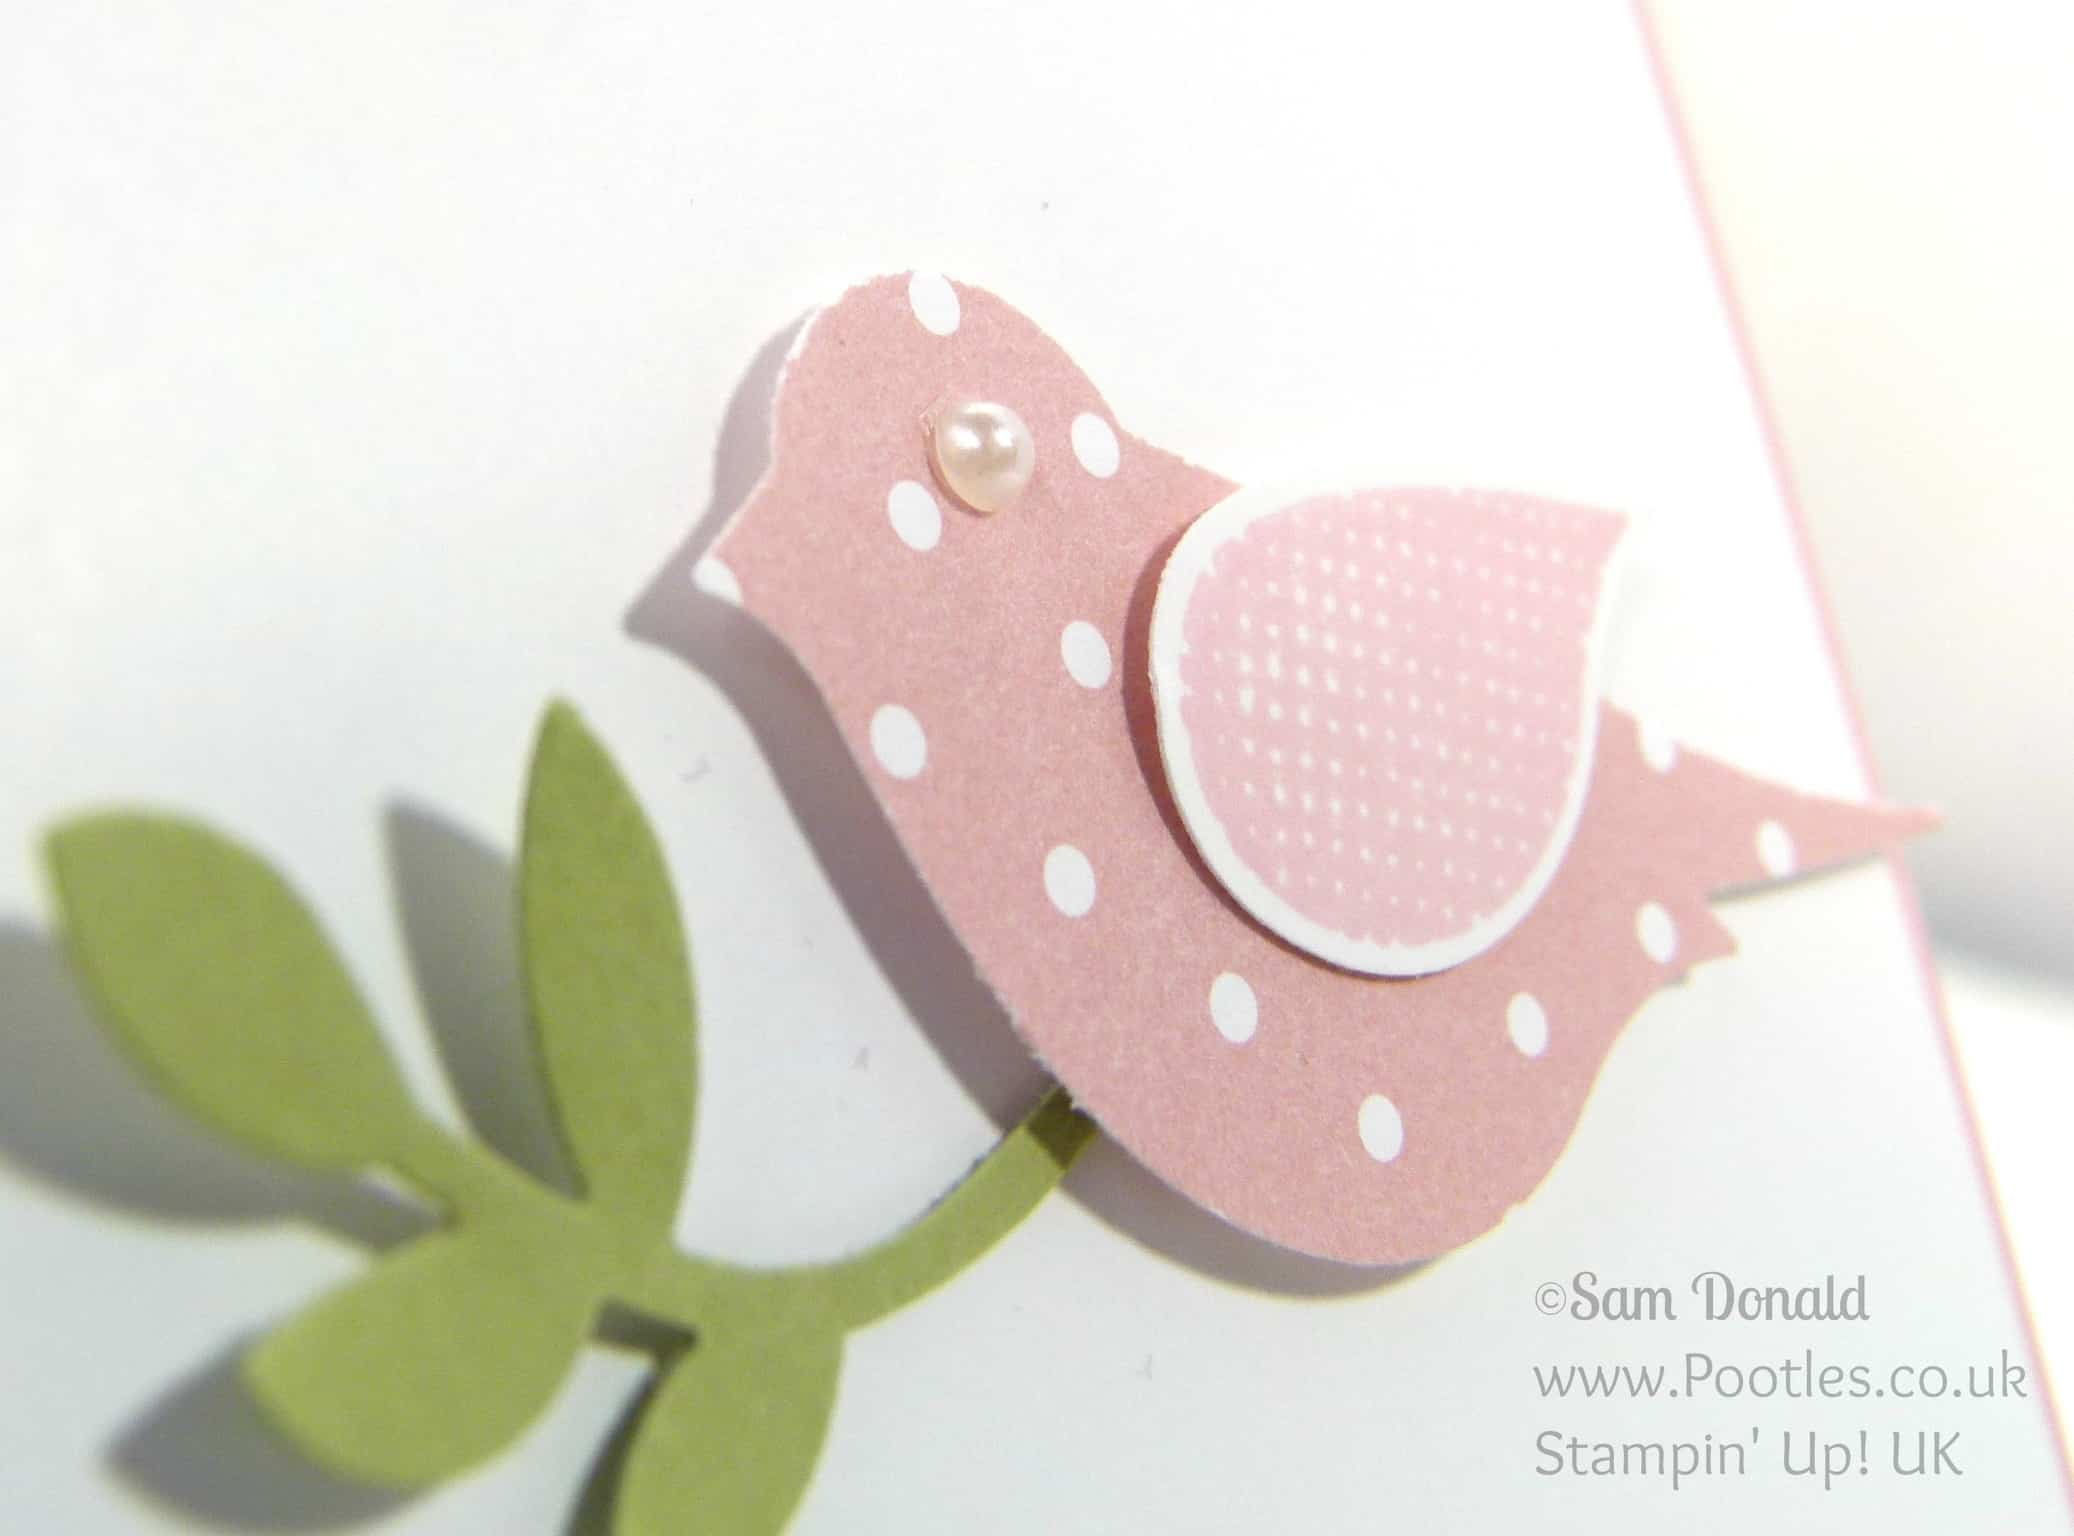 POOTLES Stampin' Up! UK Polka Dot Pieces Thank You Cards Pearl Eye Detail